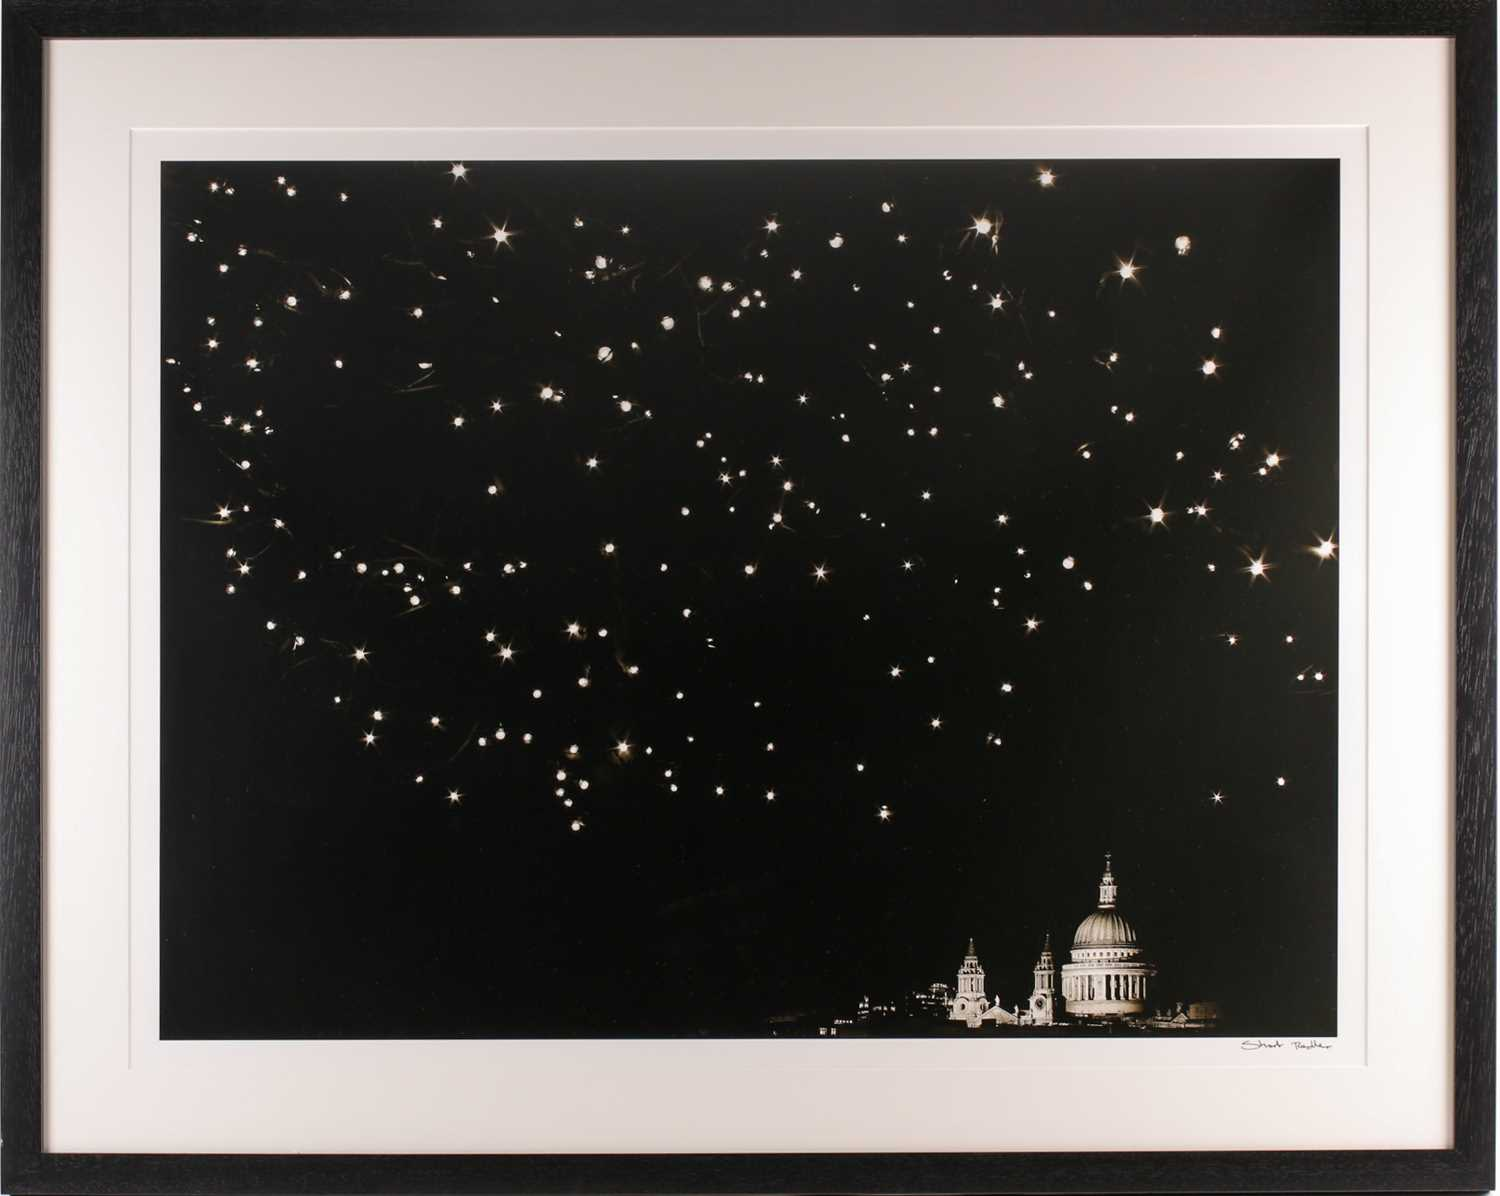 Stuart Redler, St Pauls 1, archival pigment print, signed lower right, print number 15 out of an